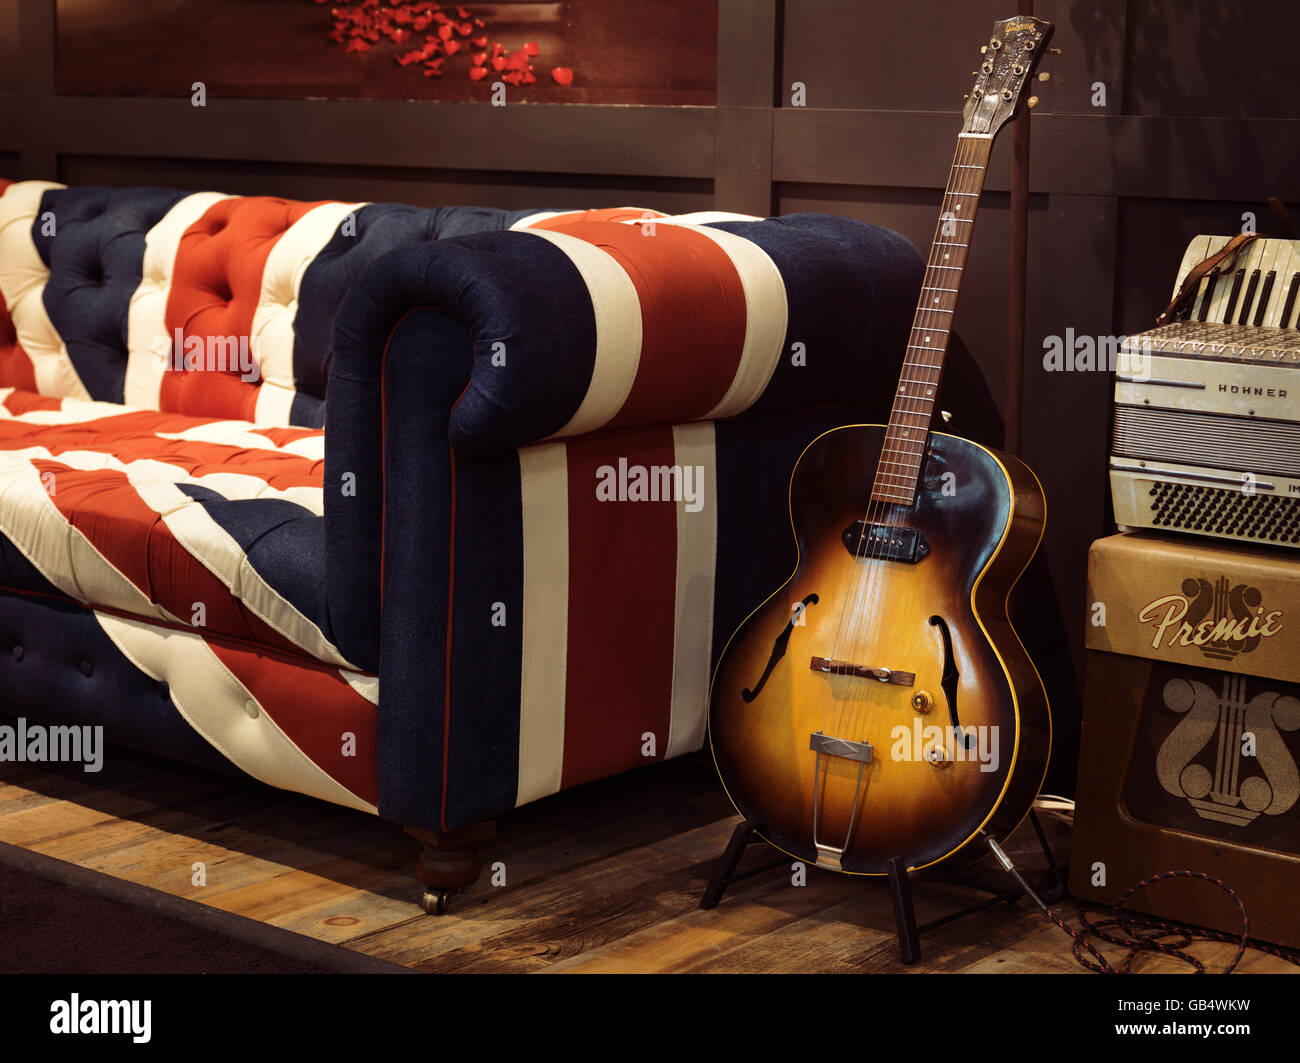 Vintage acoustic Gibson guitar on a stand at a sofa with Union Jack pattern - Stock Image